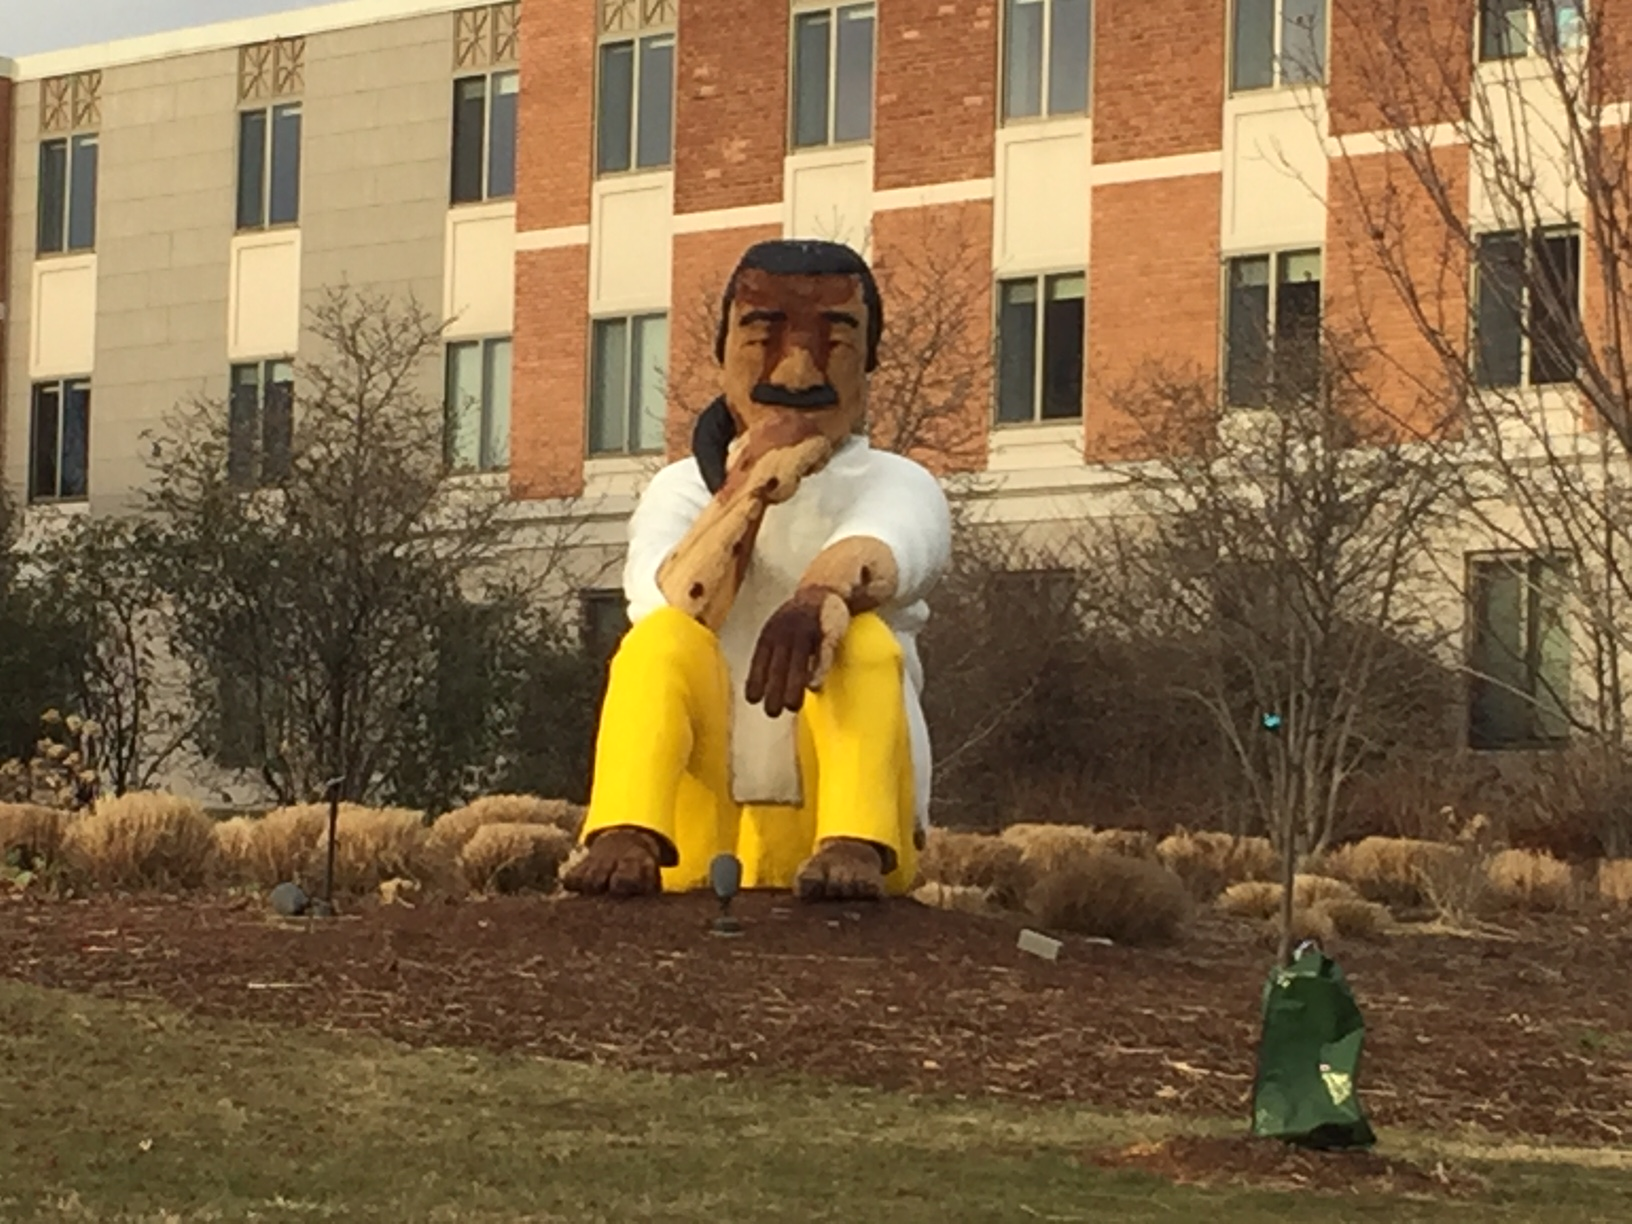 This wooden statue of Leonard Peltier at American University has roiled some members of the law enforcement community.  Peltier was convicted of killing two FBI agents but there's been a push to advocate for his clemency. (WTOP/John Domen)